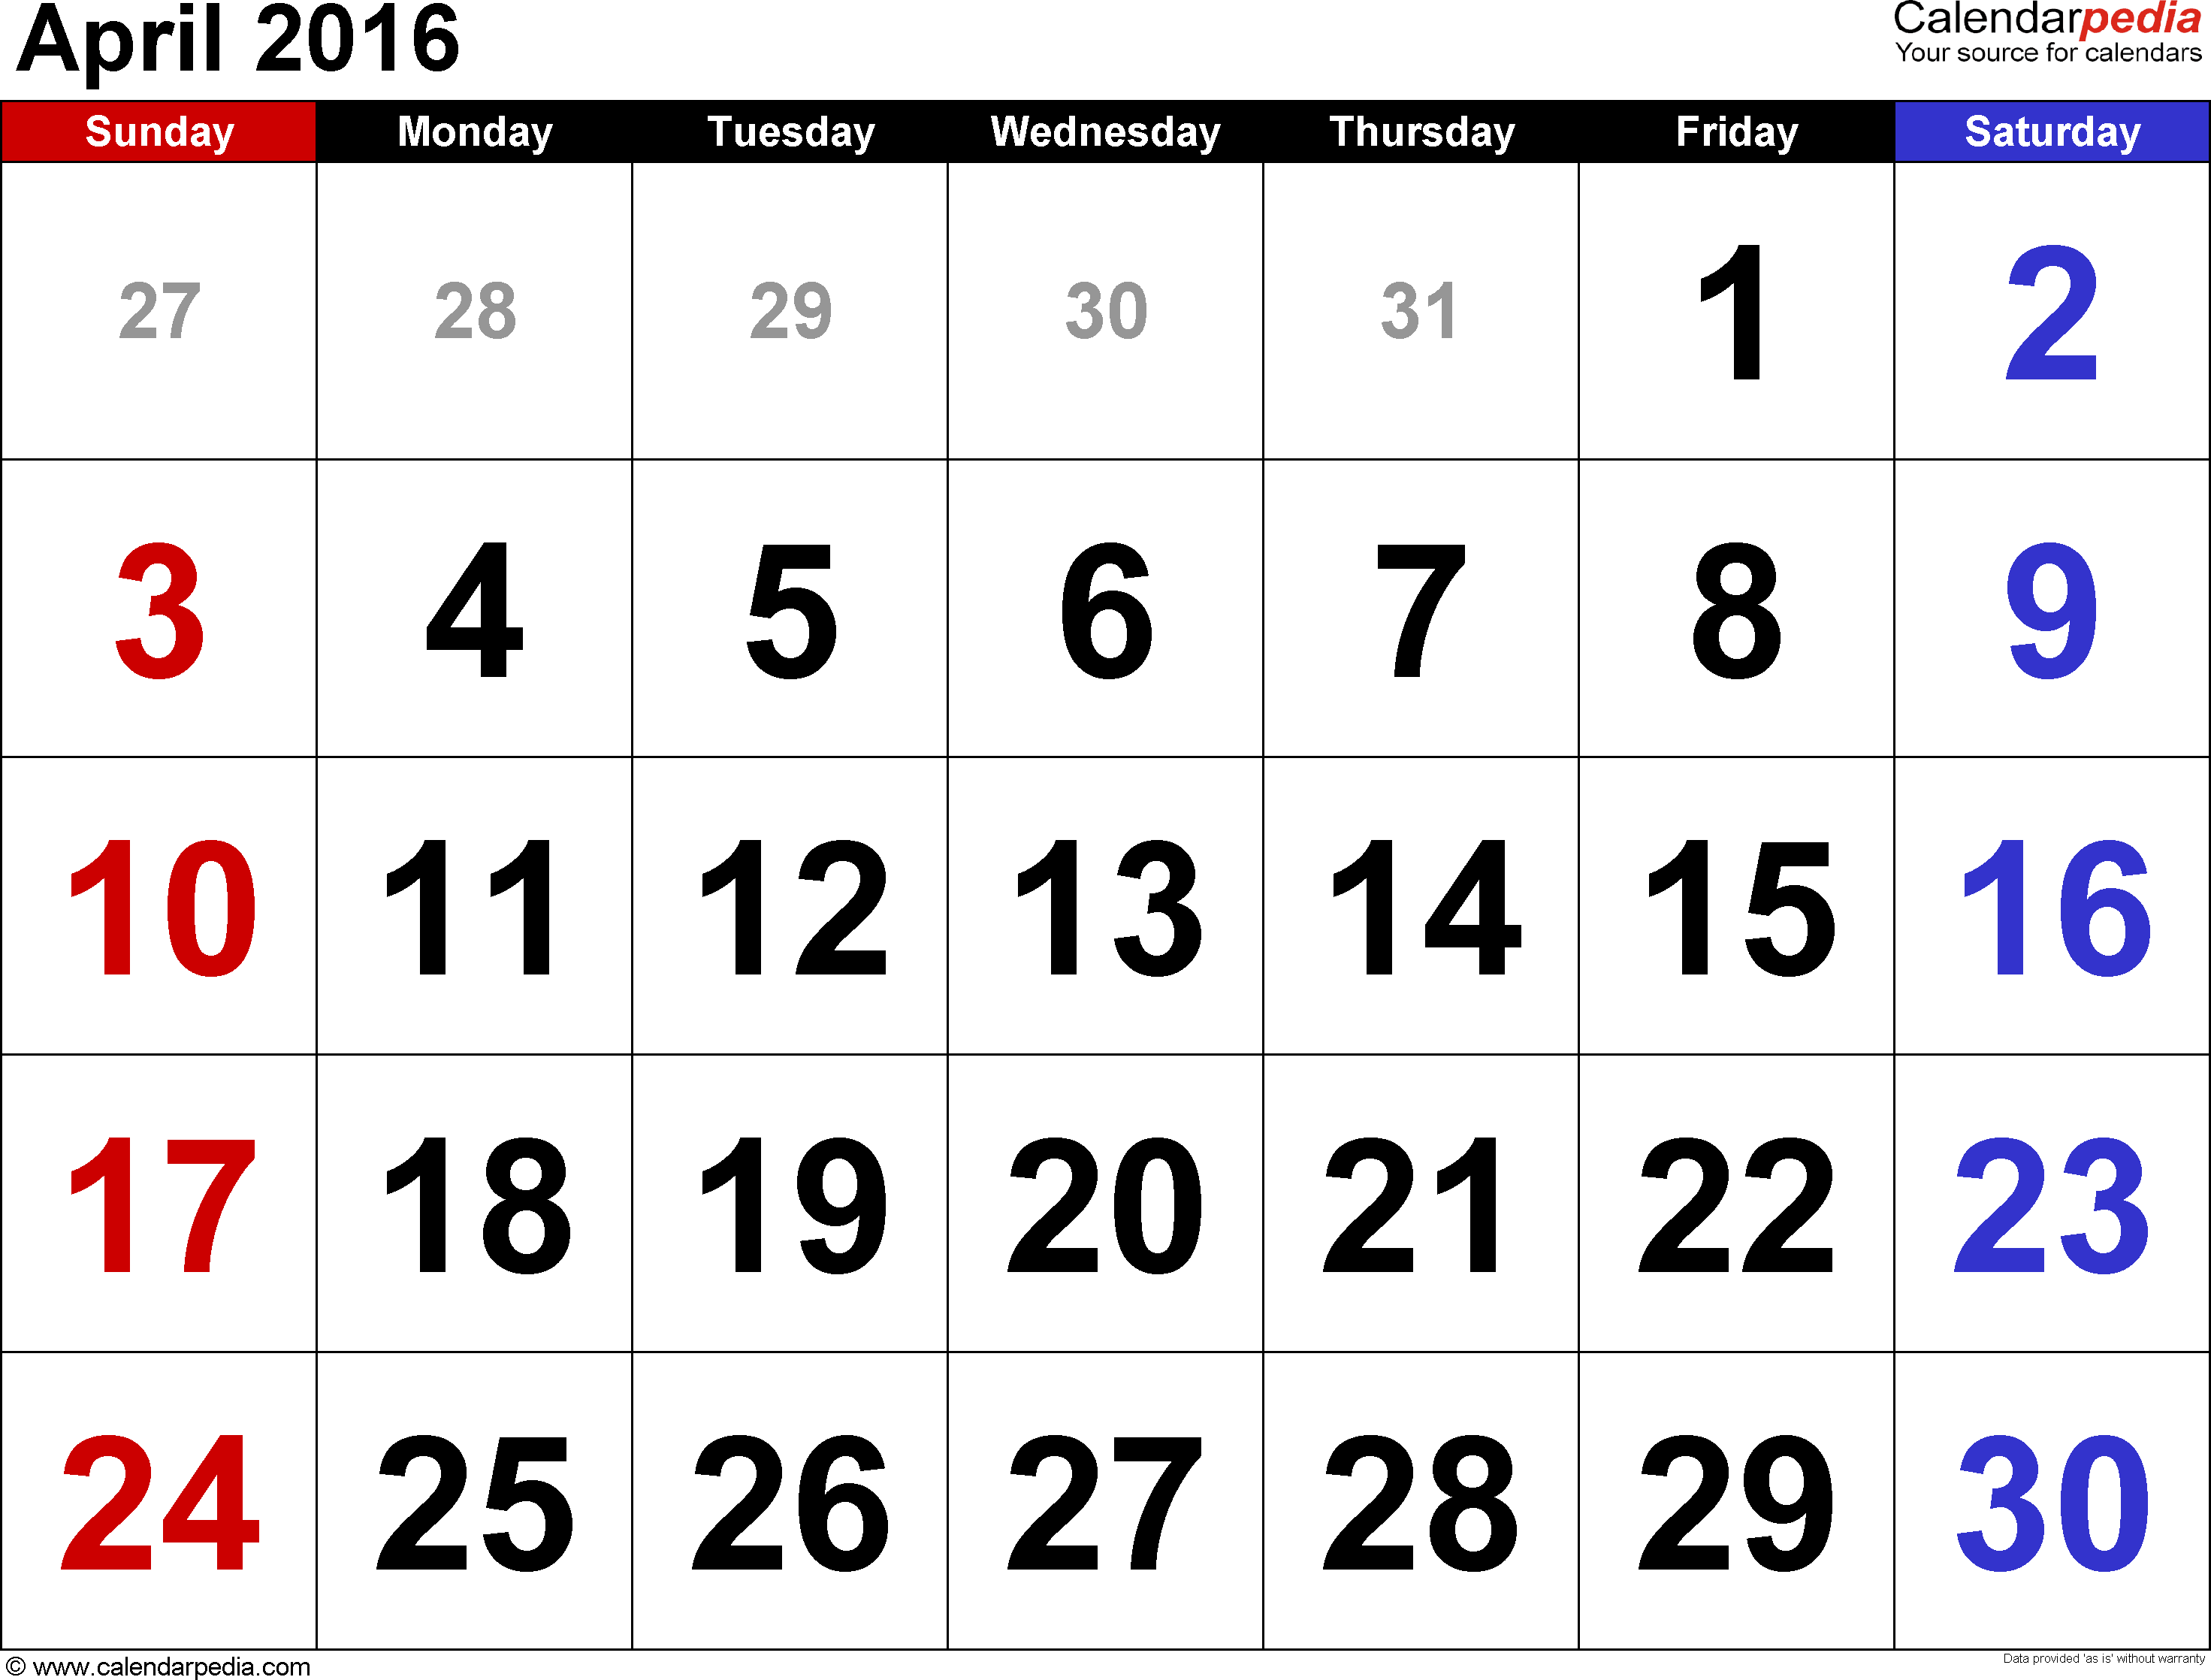 April 2016 calendar, landscape orientation, large numerals, available as printable templates for Word, Excel and PDF